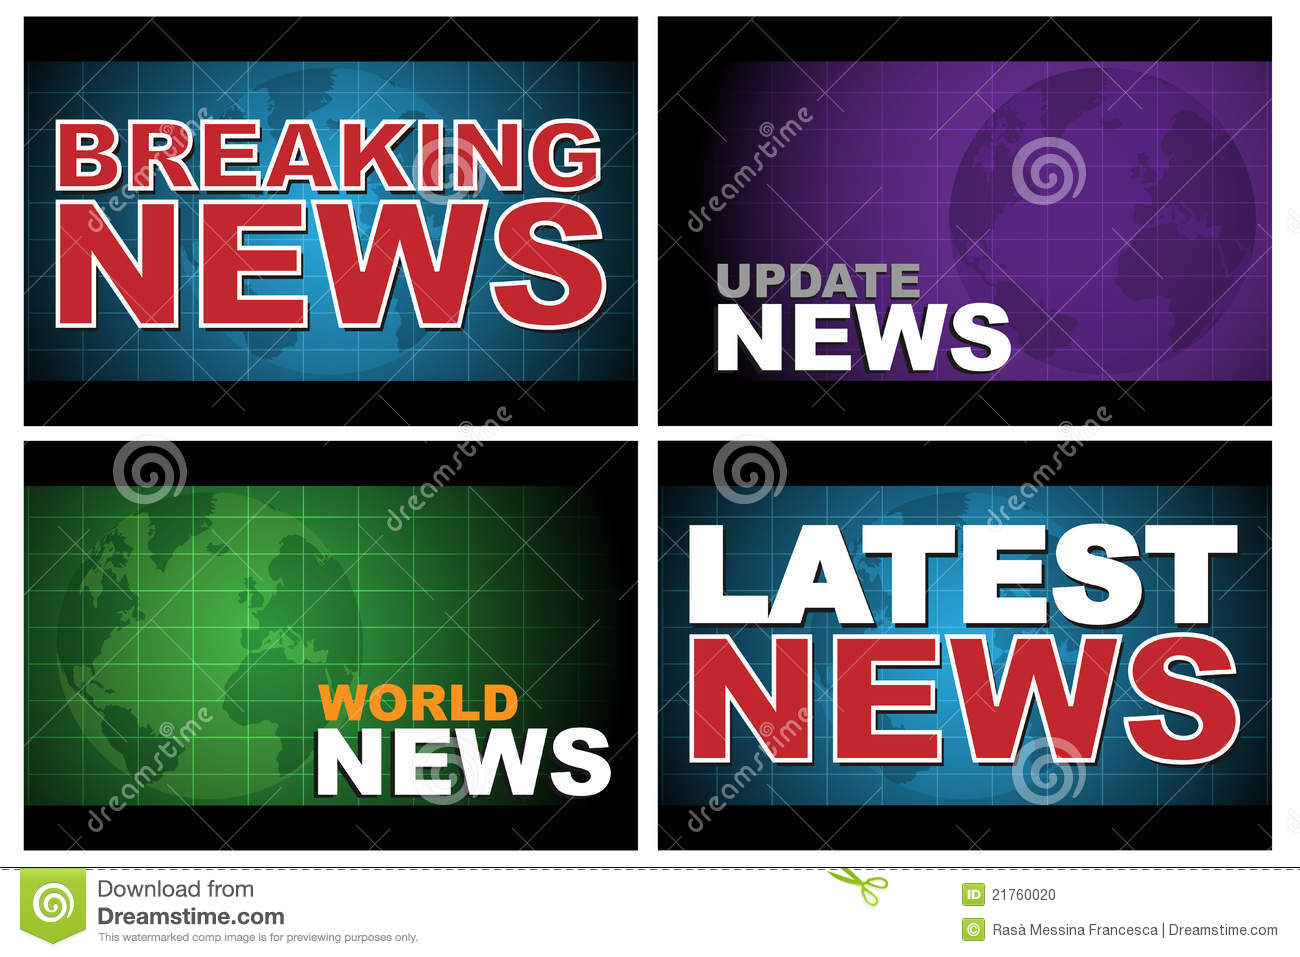 Breaking news stock vector  Illustration of blue, isolated